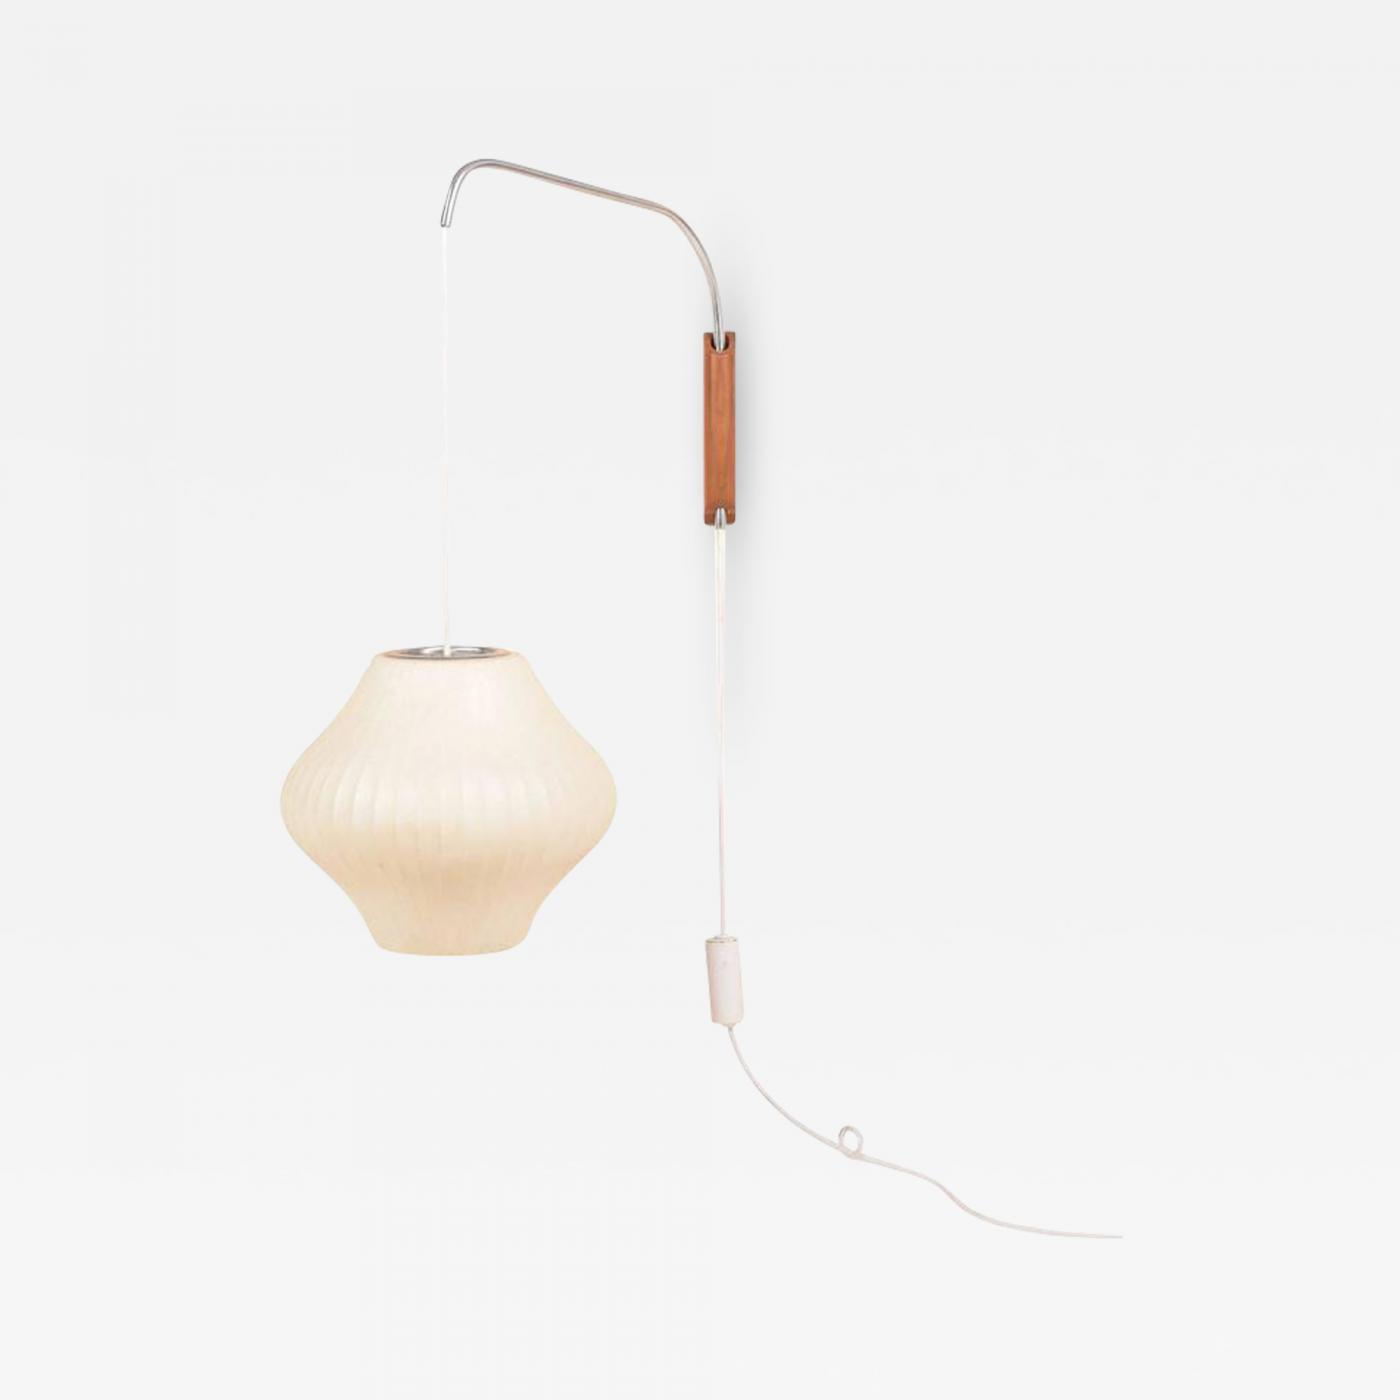 own at we dwr nelson lamps everyone bubble with least lamp one should pin agree